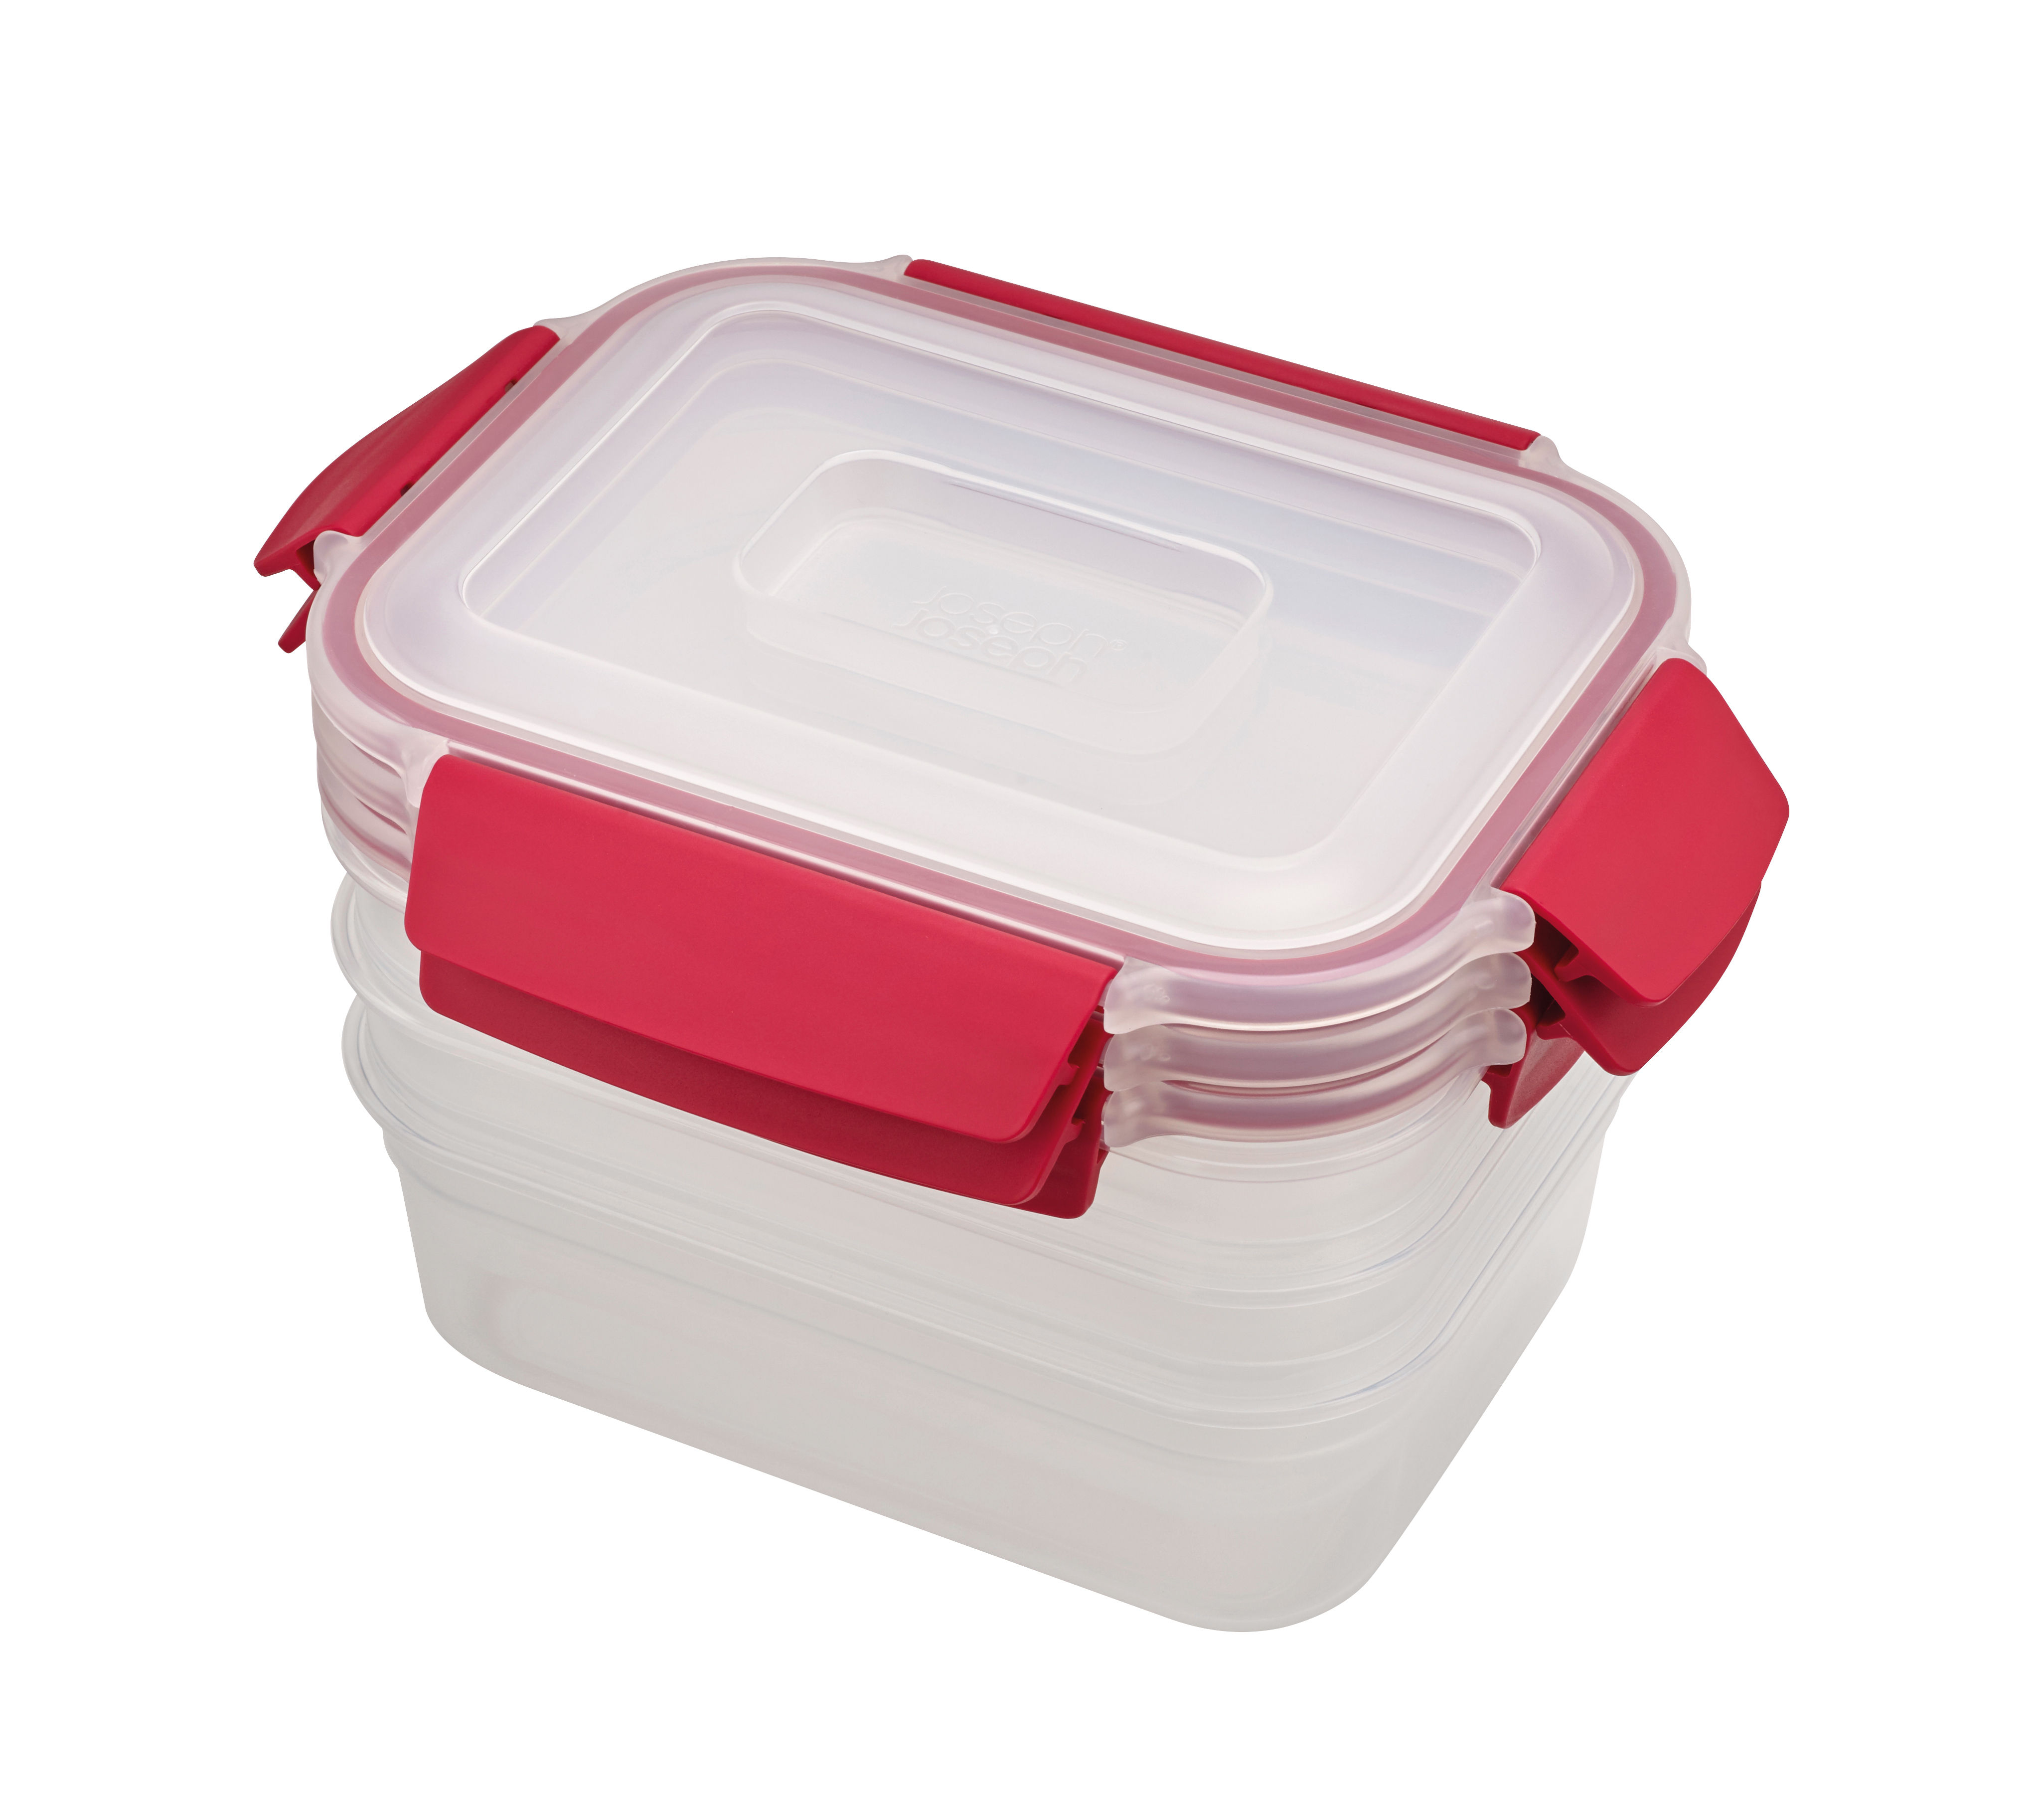 Kitchenware - Kitchen Storage Jars - Nest Lock Preservation boxes - / Stackable set of 3 - 3 X 1.1 L by Joseph Joseph - 3 x 1.1 L / Red - BPA-free plastic